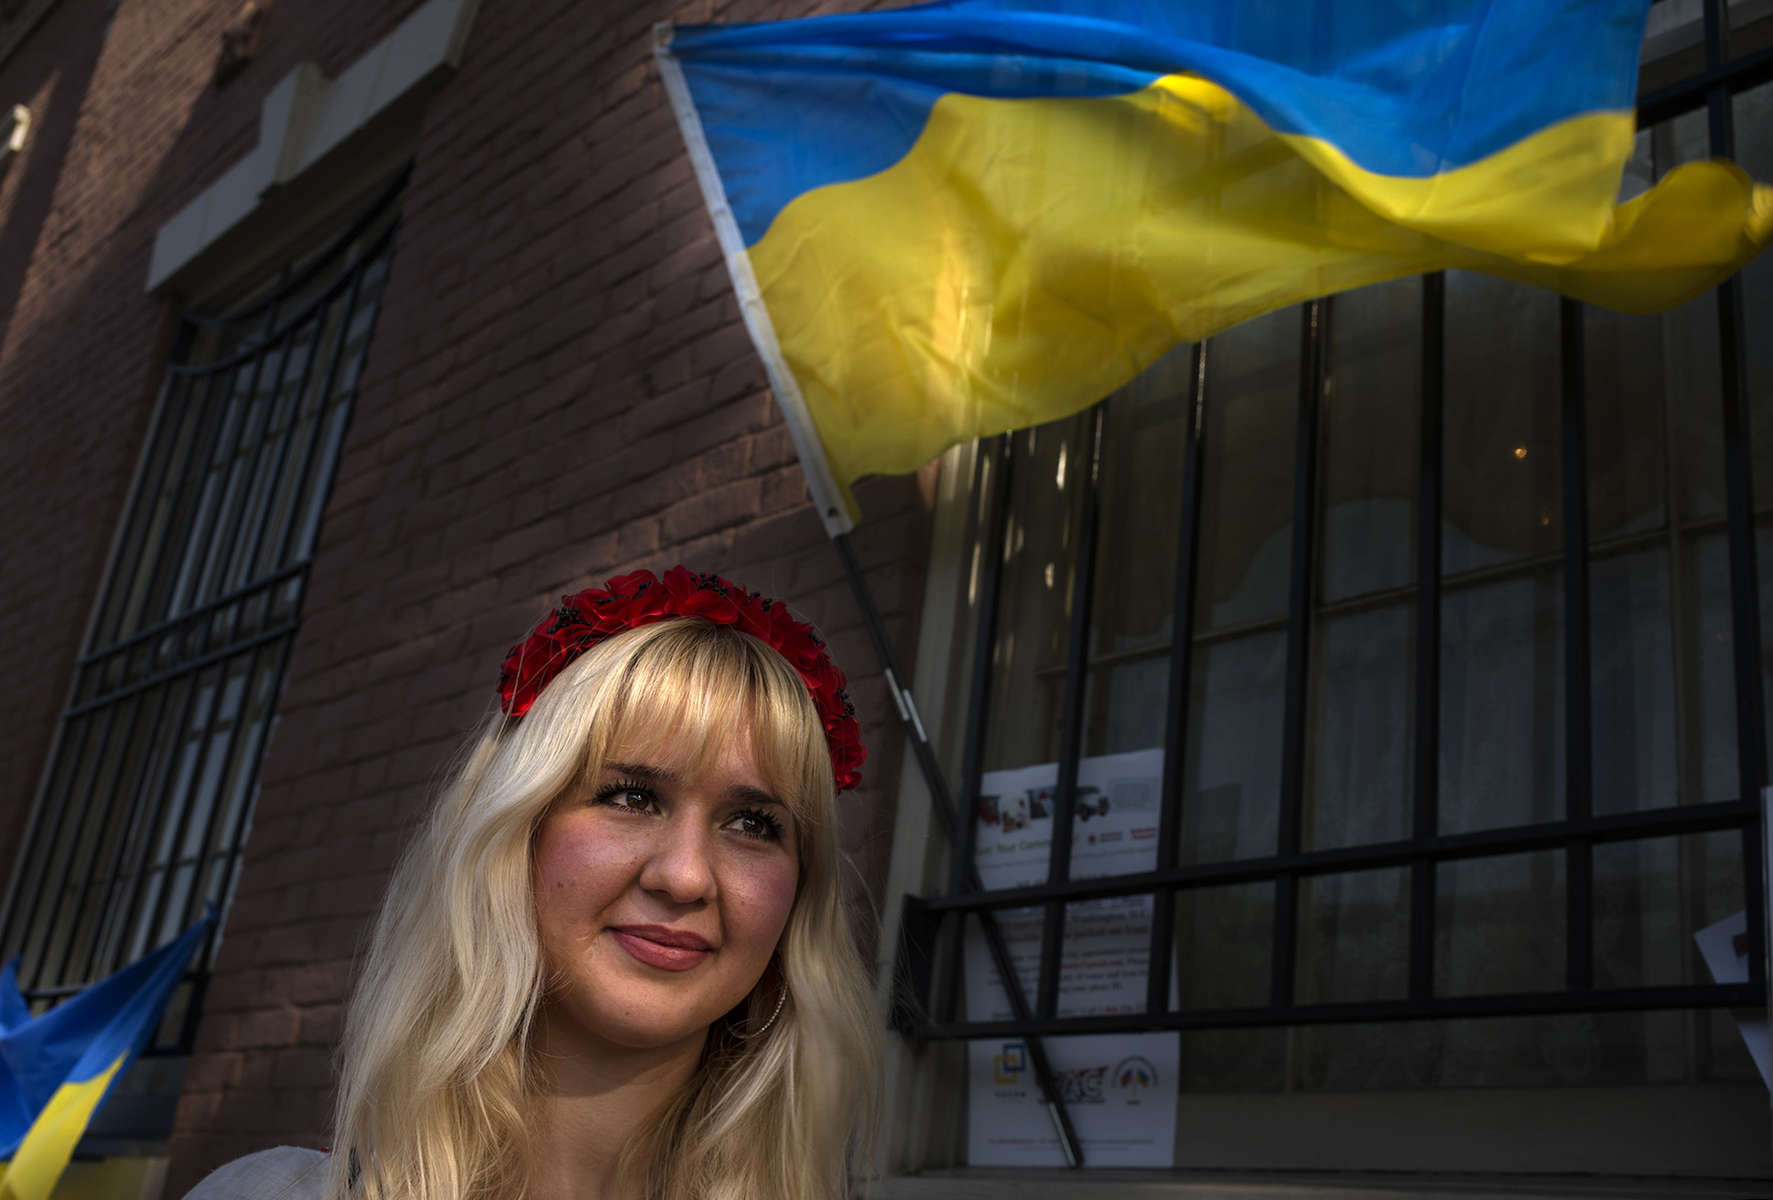 Anna Onoprienko, 26, of McLean, Virginia, with the group Razom, collects donations as local Ukrainians cast their vote for a new president at the Embassy of Ukraine in Washington, D.C., on Sunday, May 25, 2014. Washington, D.C., is one of four voting stations around the United States. New York City, Chicago and San Francisco are the other cities where Ukrainians voted for a new government. © 2014 Nikki Kahn ALL RIGHTS RESERVED